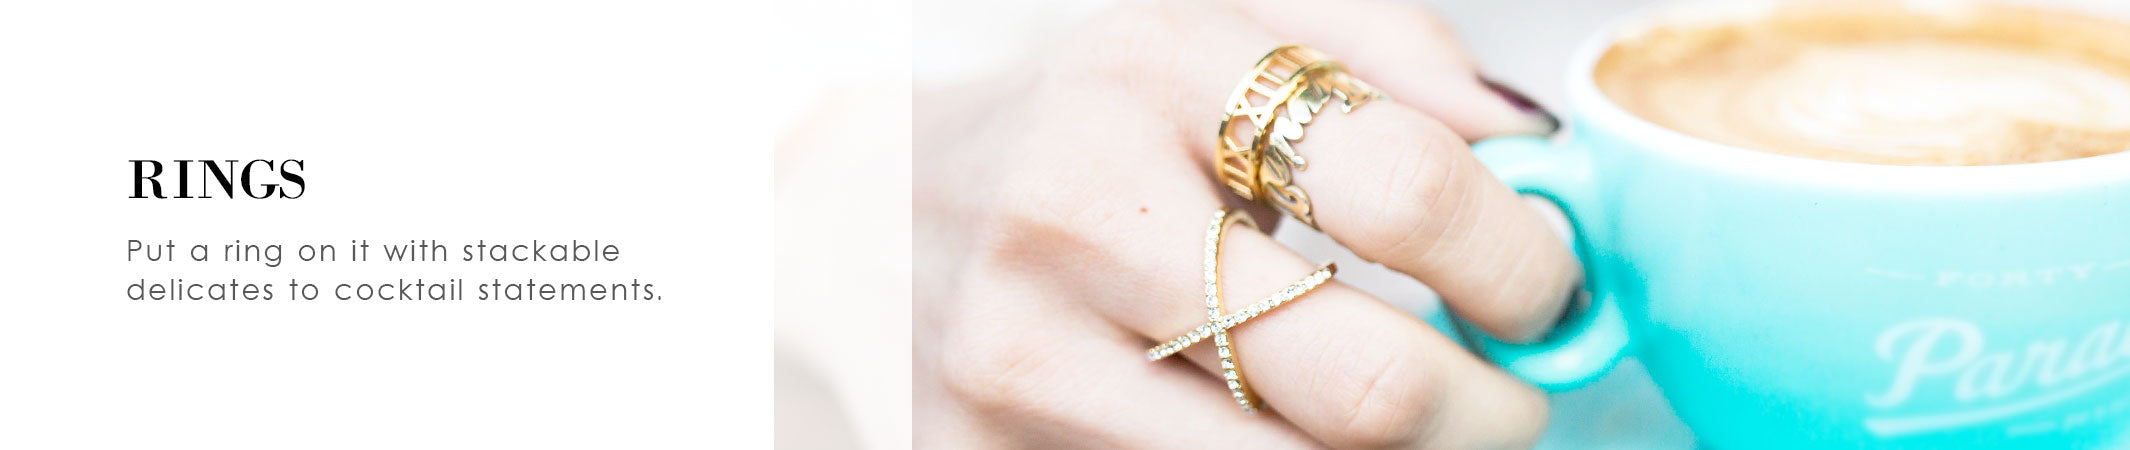 Stacking Rings and Statement Rings | olive + piper